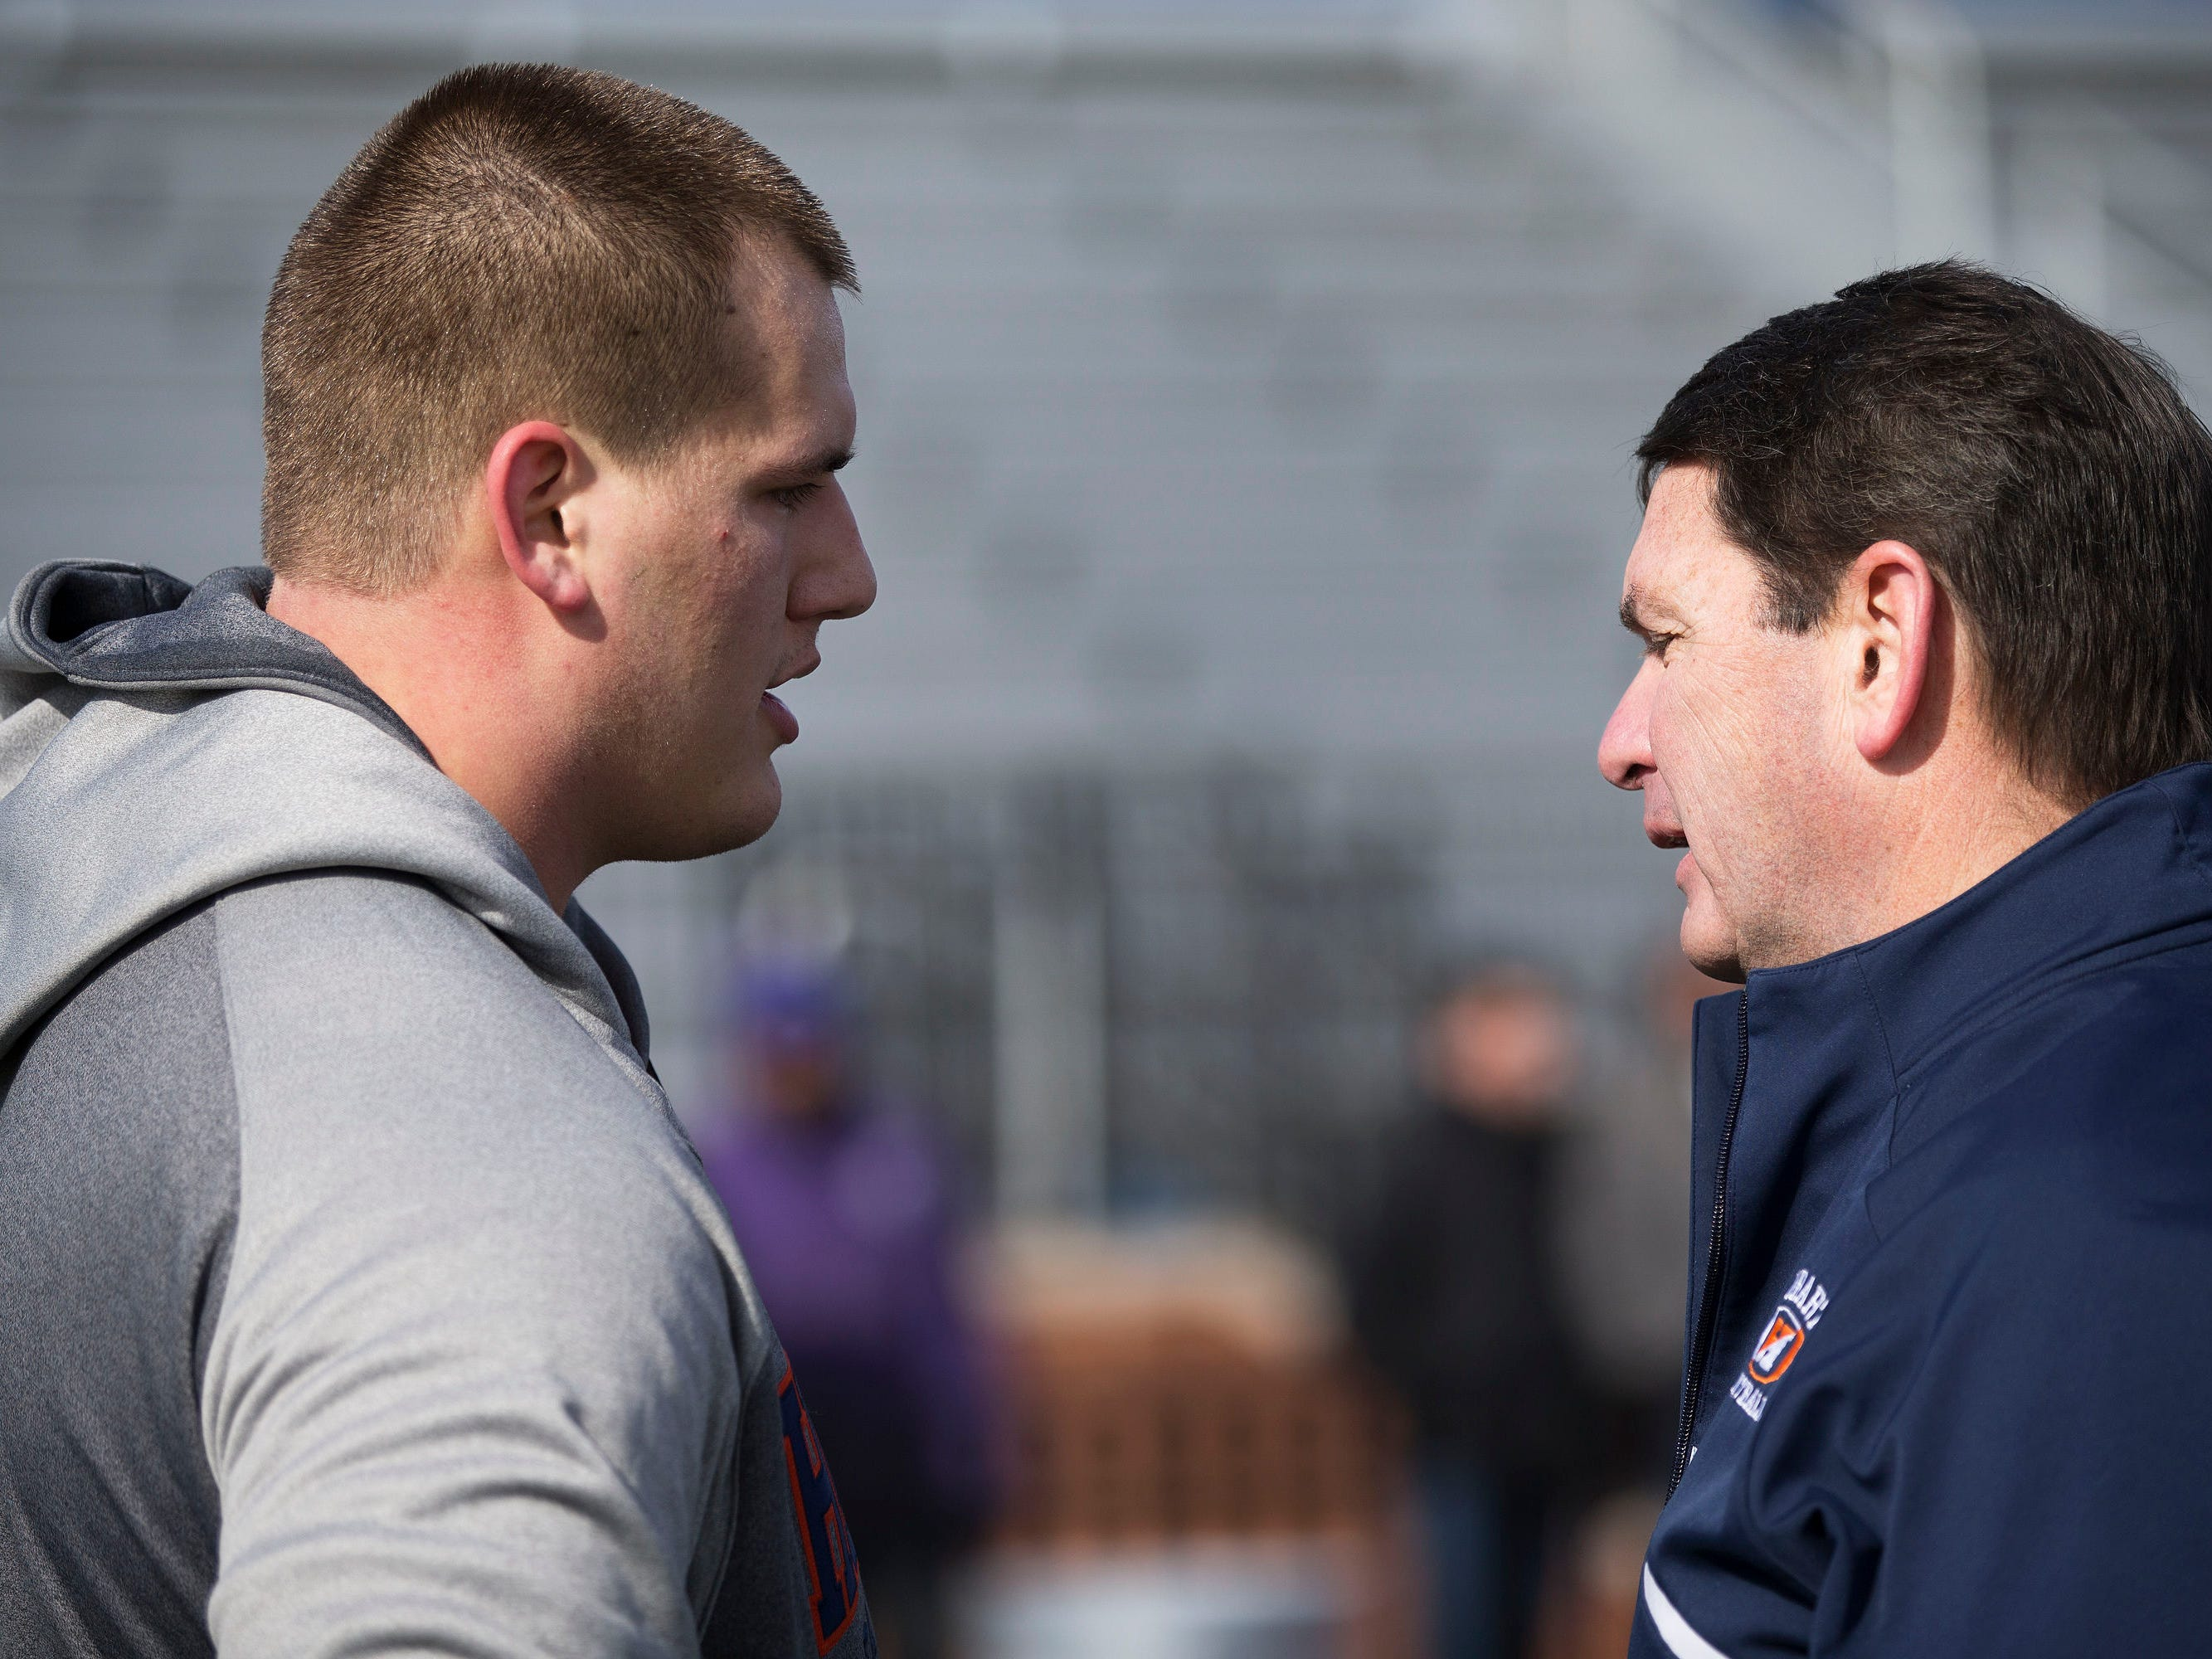 Hobart football senior offensive lineman Ali Marpet speaks to head coach Mike Cragg after finishing his NFL Pro Day workout at Hobart College.